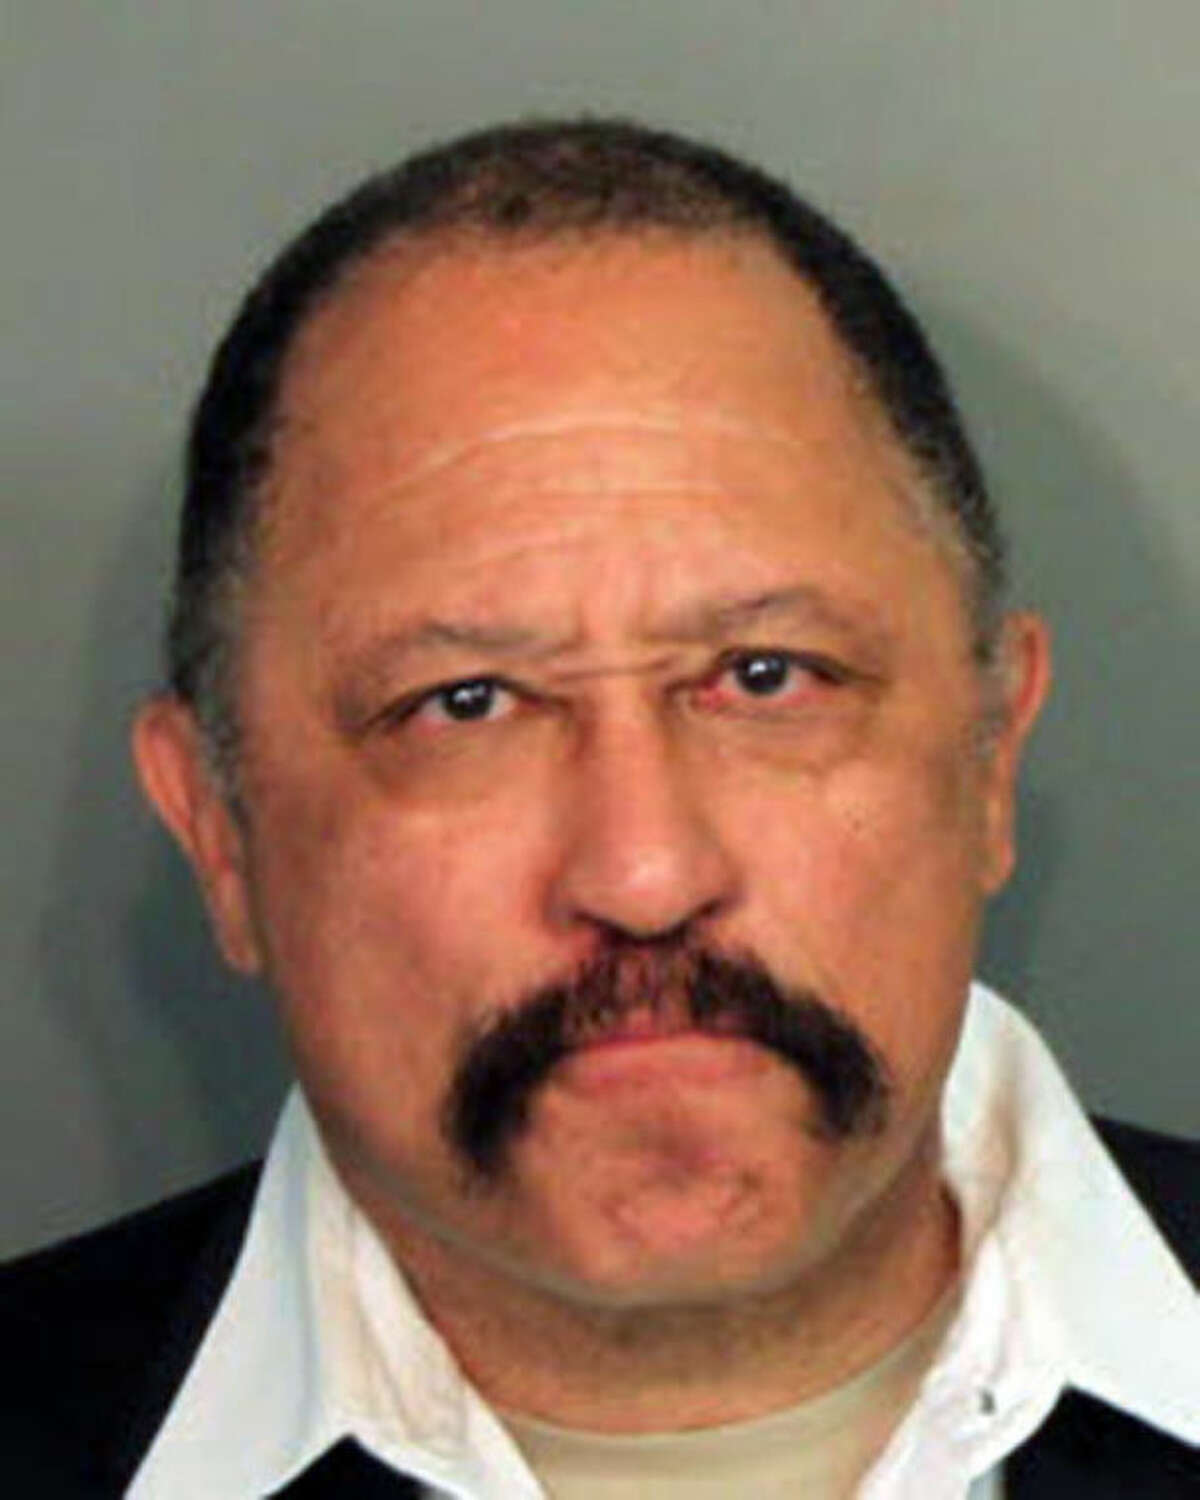 This photo provided by the Shelby County Sheriff's Office on Monday, March 24, 2014, shows Judge Joe Brown, who was arrested and charged with five counts of contempt of court in Tennessee. Shelby County Juvenile Court officials said the 66-year-old was sentenced to five days in jail after causing an outburst Monday in a courtroom hearing. The former TV show star is running for Shelby County District Attorney General. (AP Photo/Shelby County Sheriff's Office)